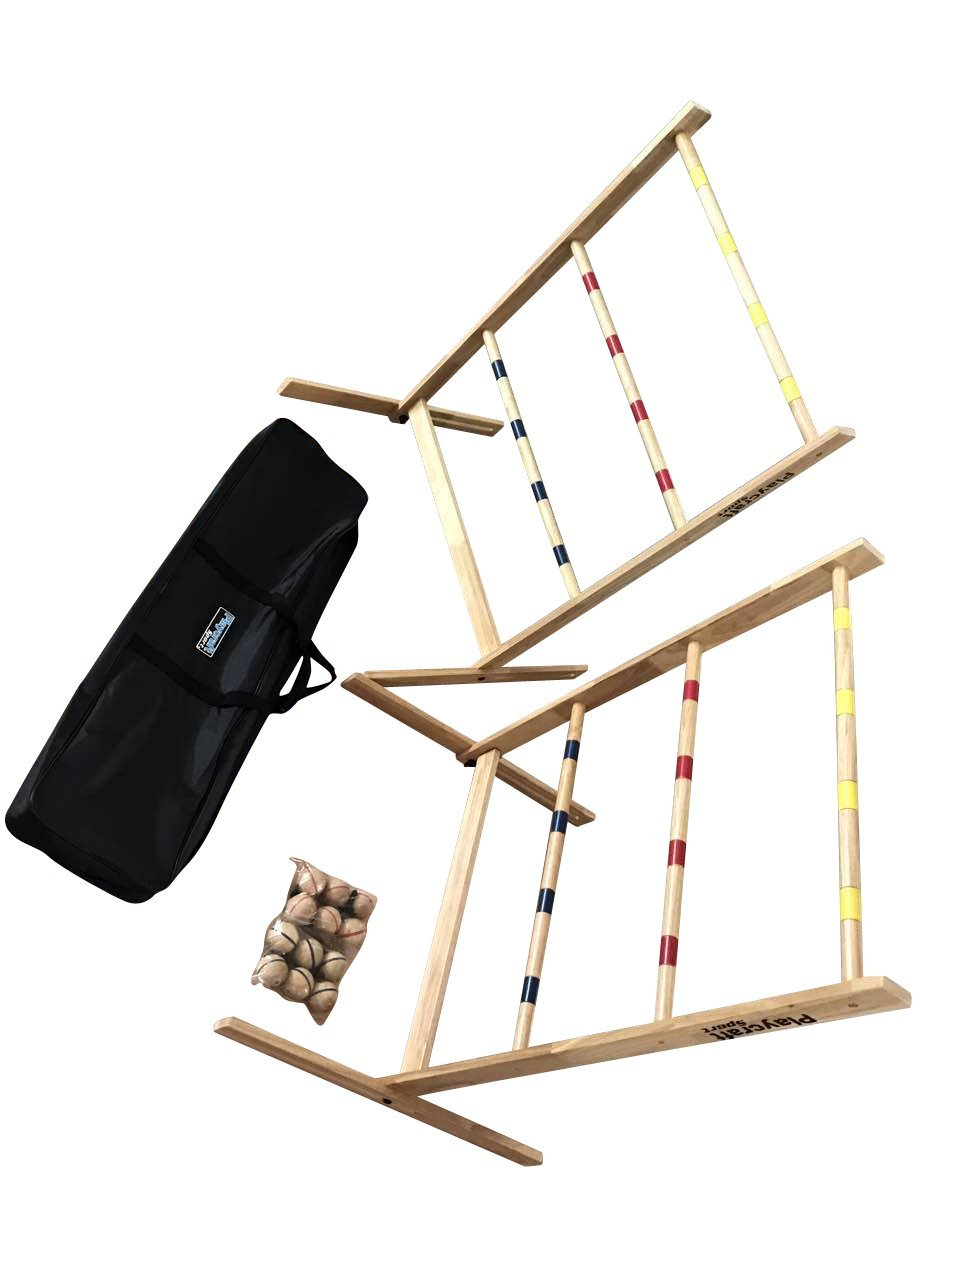 Playcraft Sport Deluxe Hardwood Ladder Toss